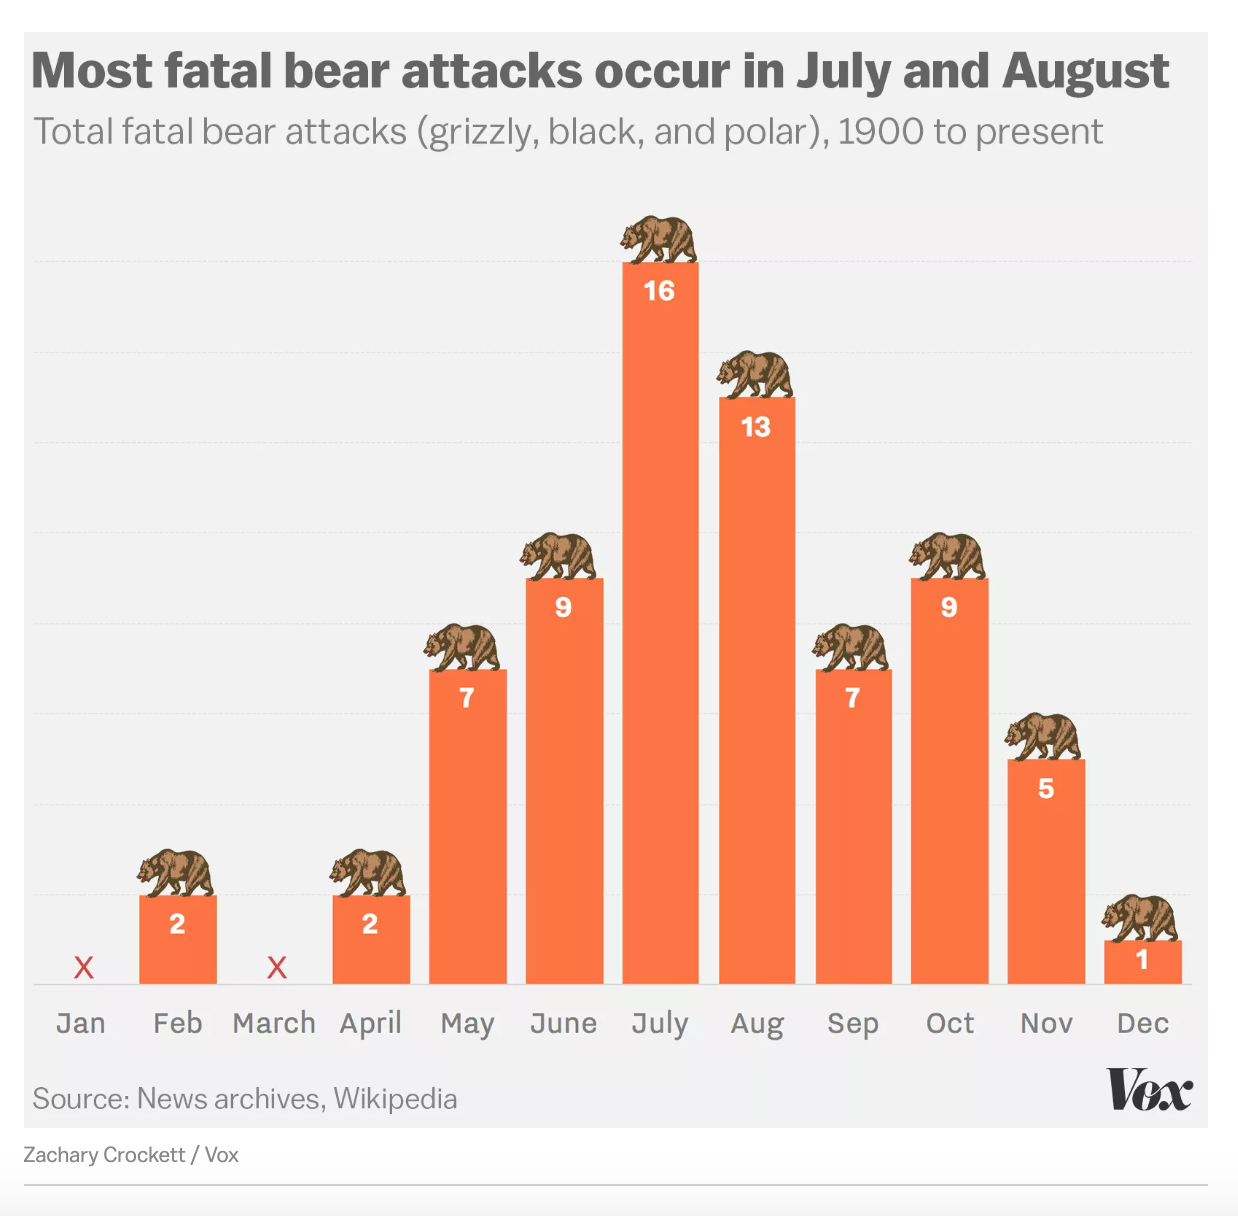 Are you likely to be attacked by a bear? - Towards Data Science